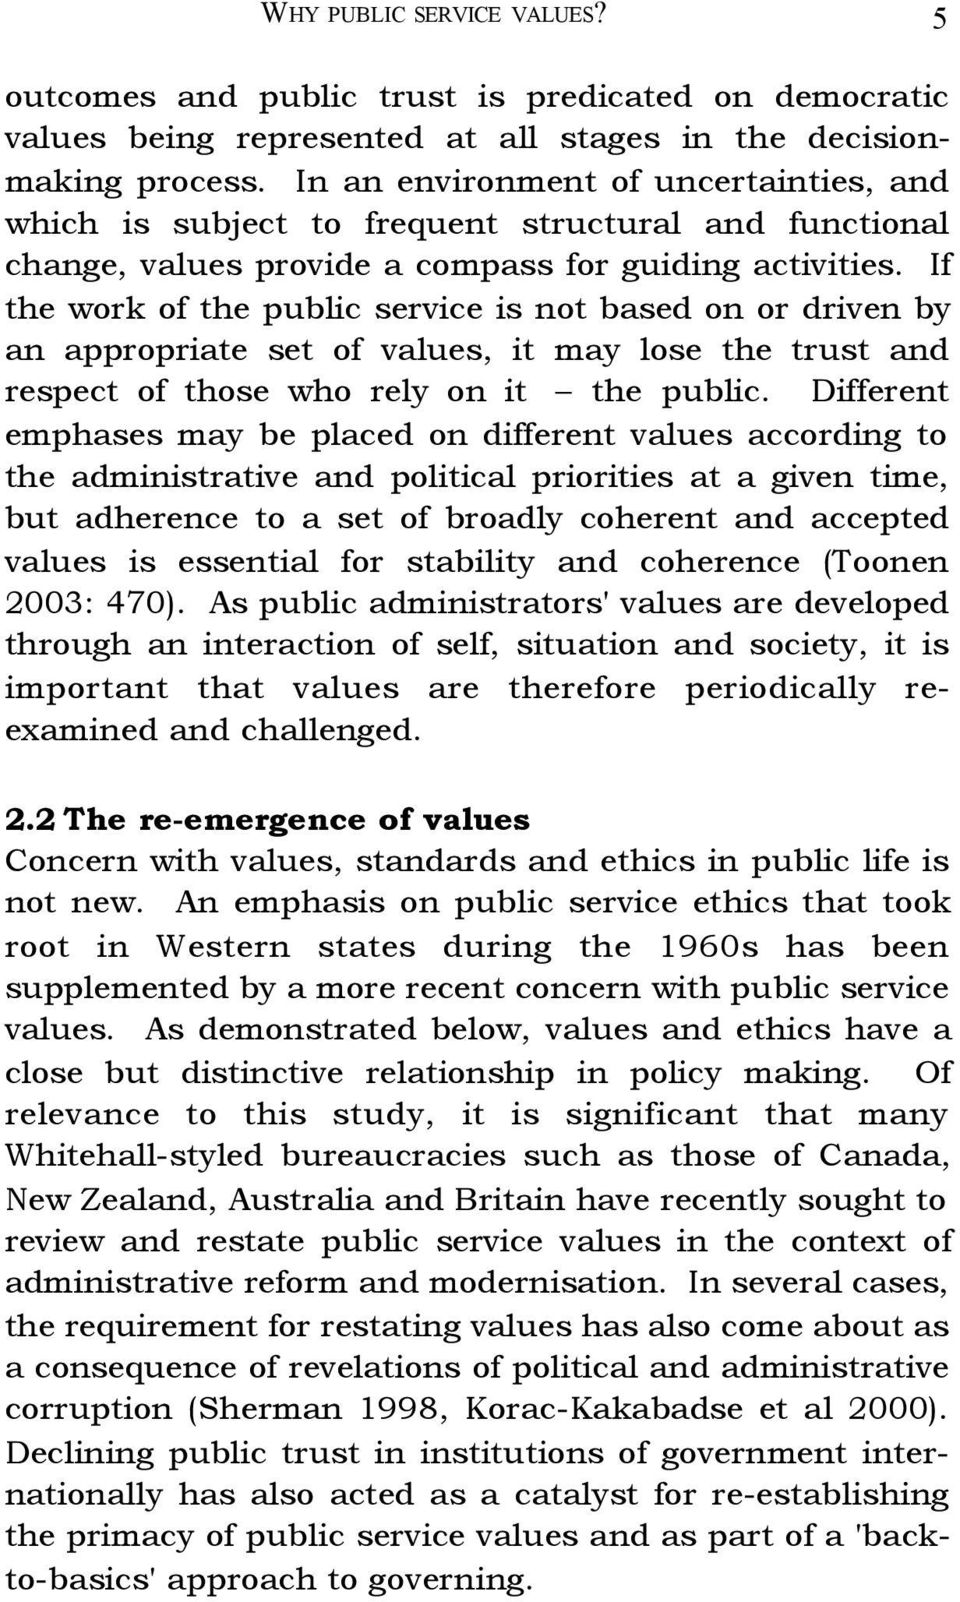 If the work of the public service is not based on or driven by an appropriate set of values, it may lose the trust and respect of those who rely on it the public.